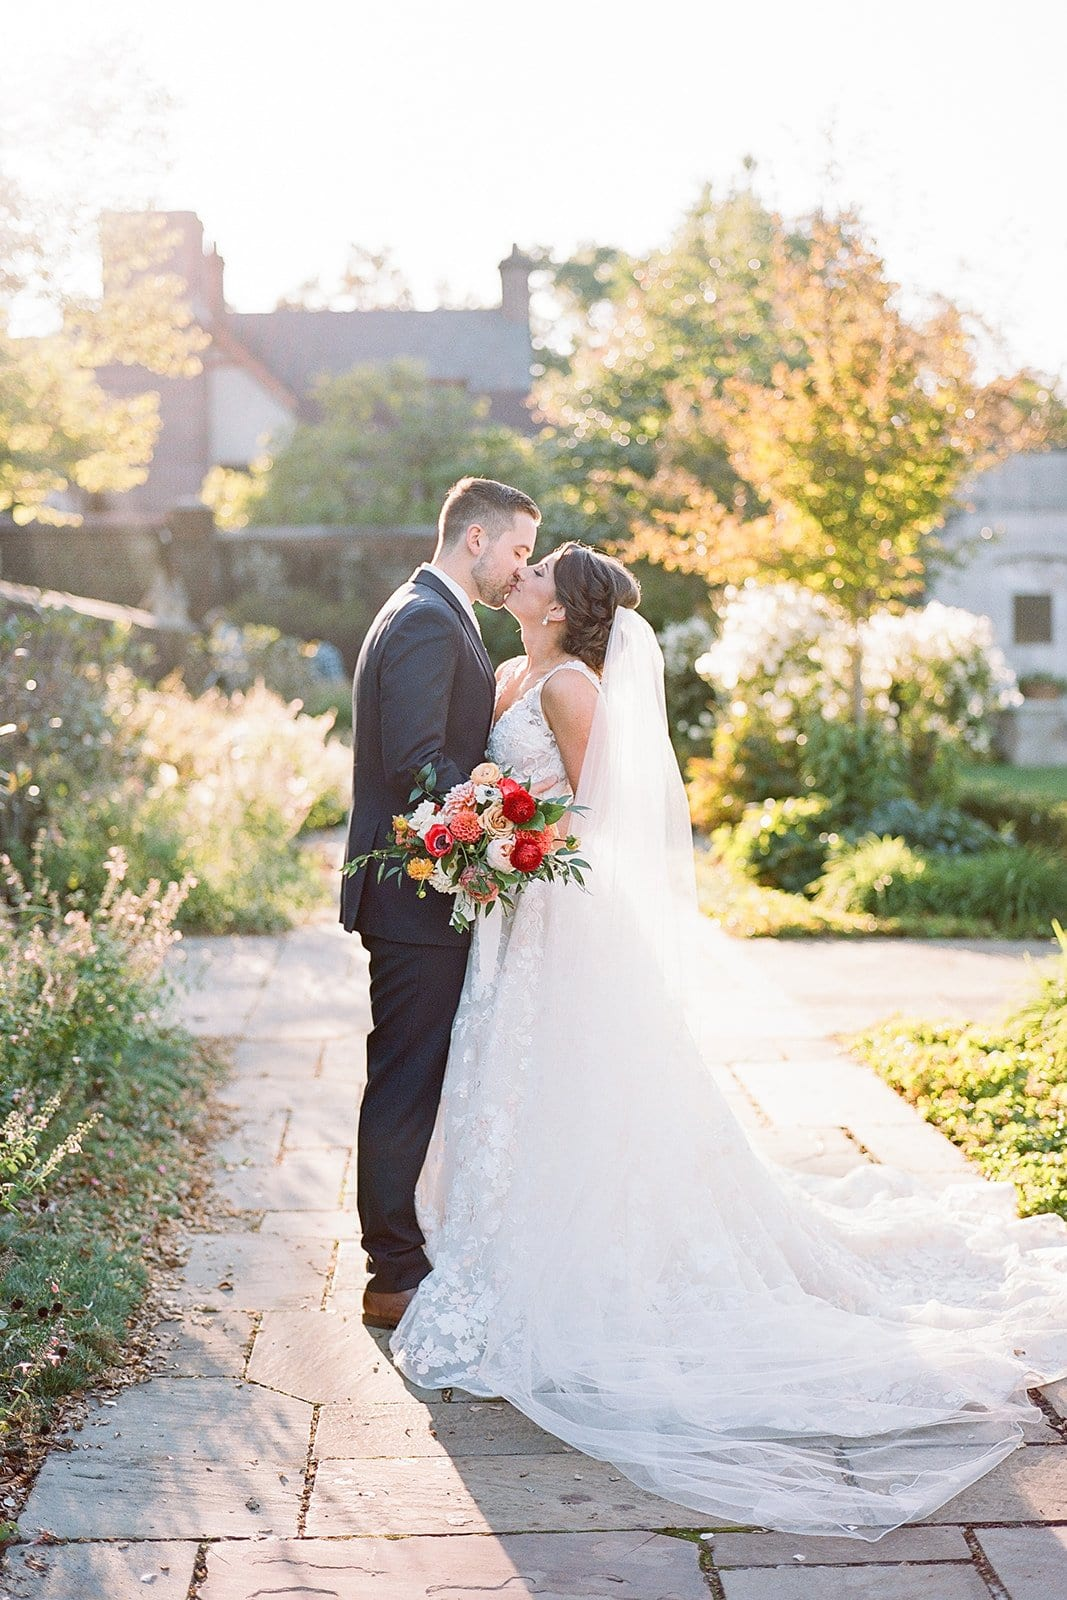 Outdoor wedding portraits for modern fall Pittsburgh wedding captured by Pittsburgh wedding photographer Lauren Renee: Wedding Photography in Pittsburgh - Lauren Renee Wedding Photographer